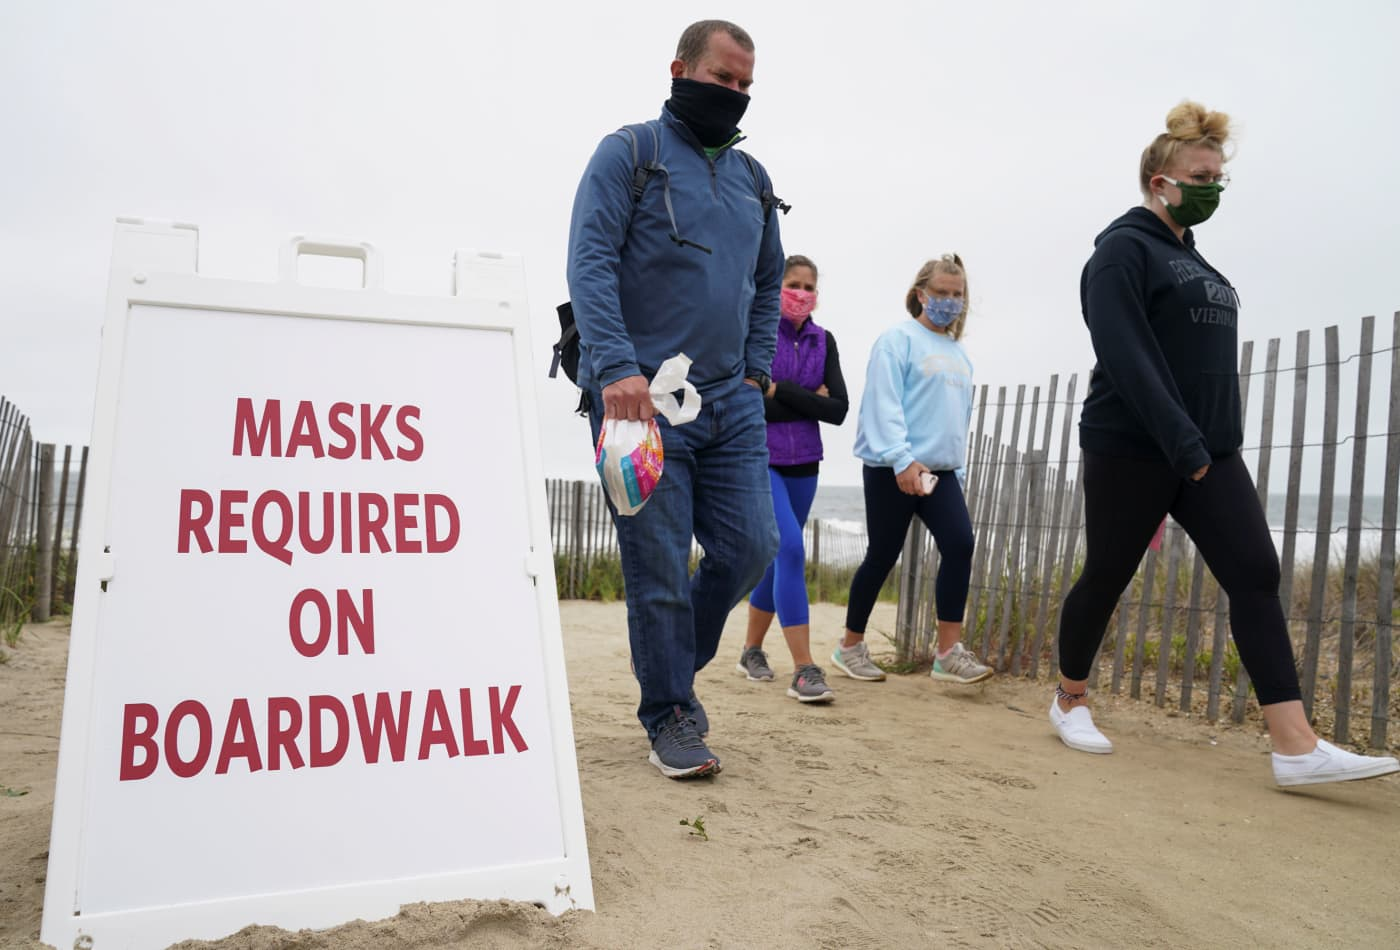 Dr. Scott Gottlieb says 'nobody is going to be wearing' Covid masks by June